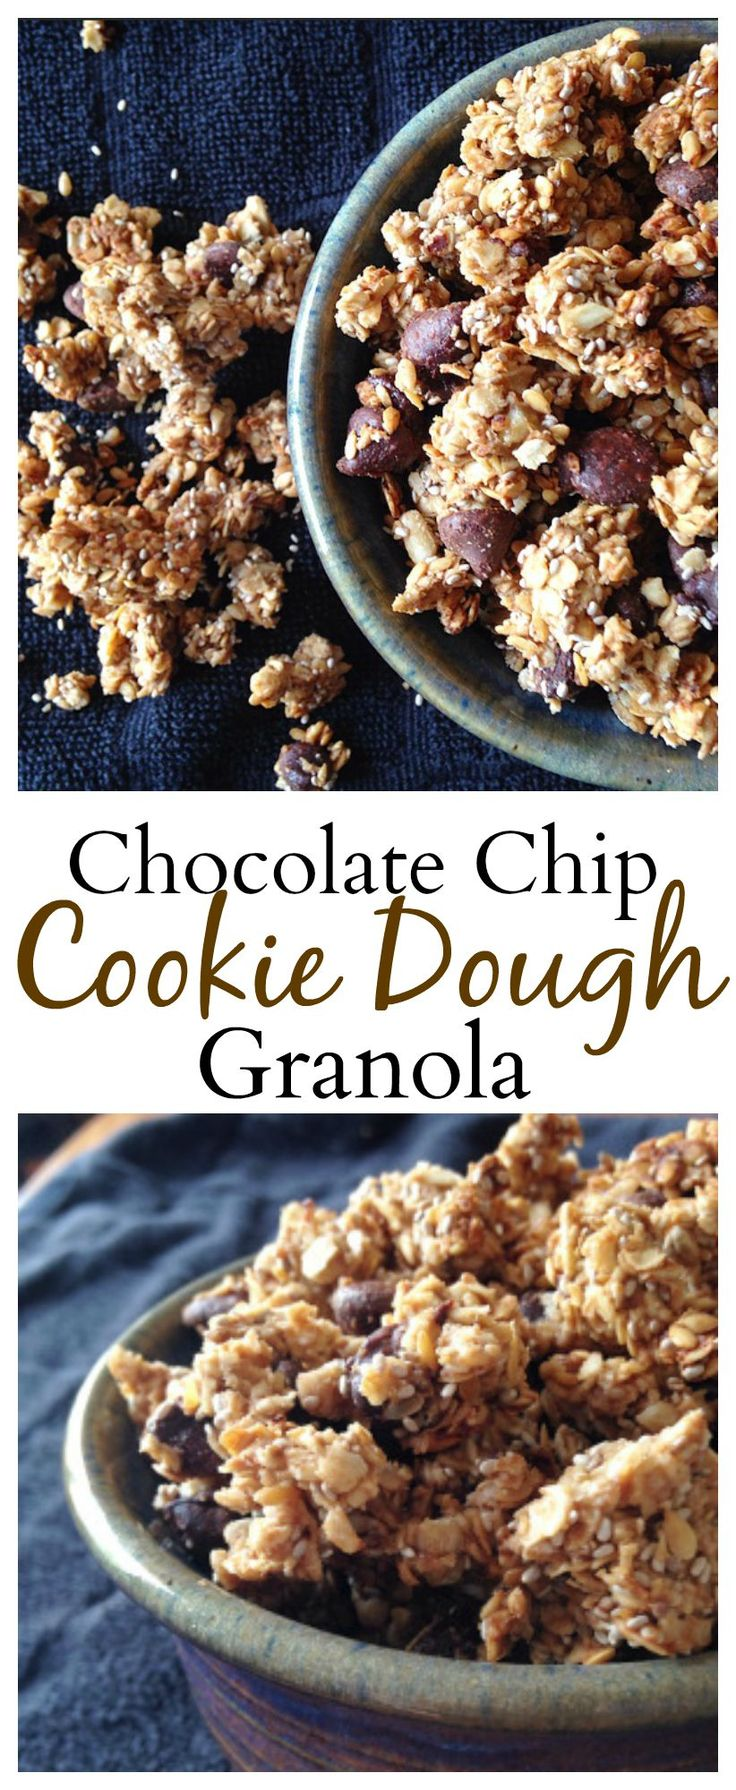 healthy Chocolate Chip Cookie Dough Granola is the best granola you will ever taste!